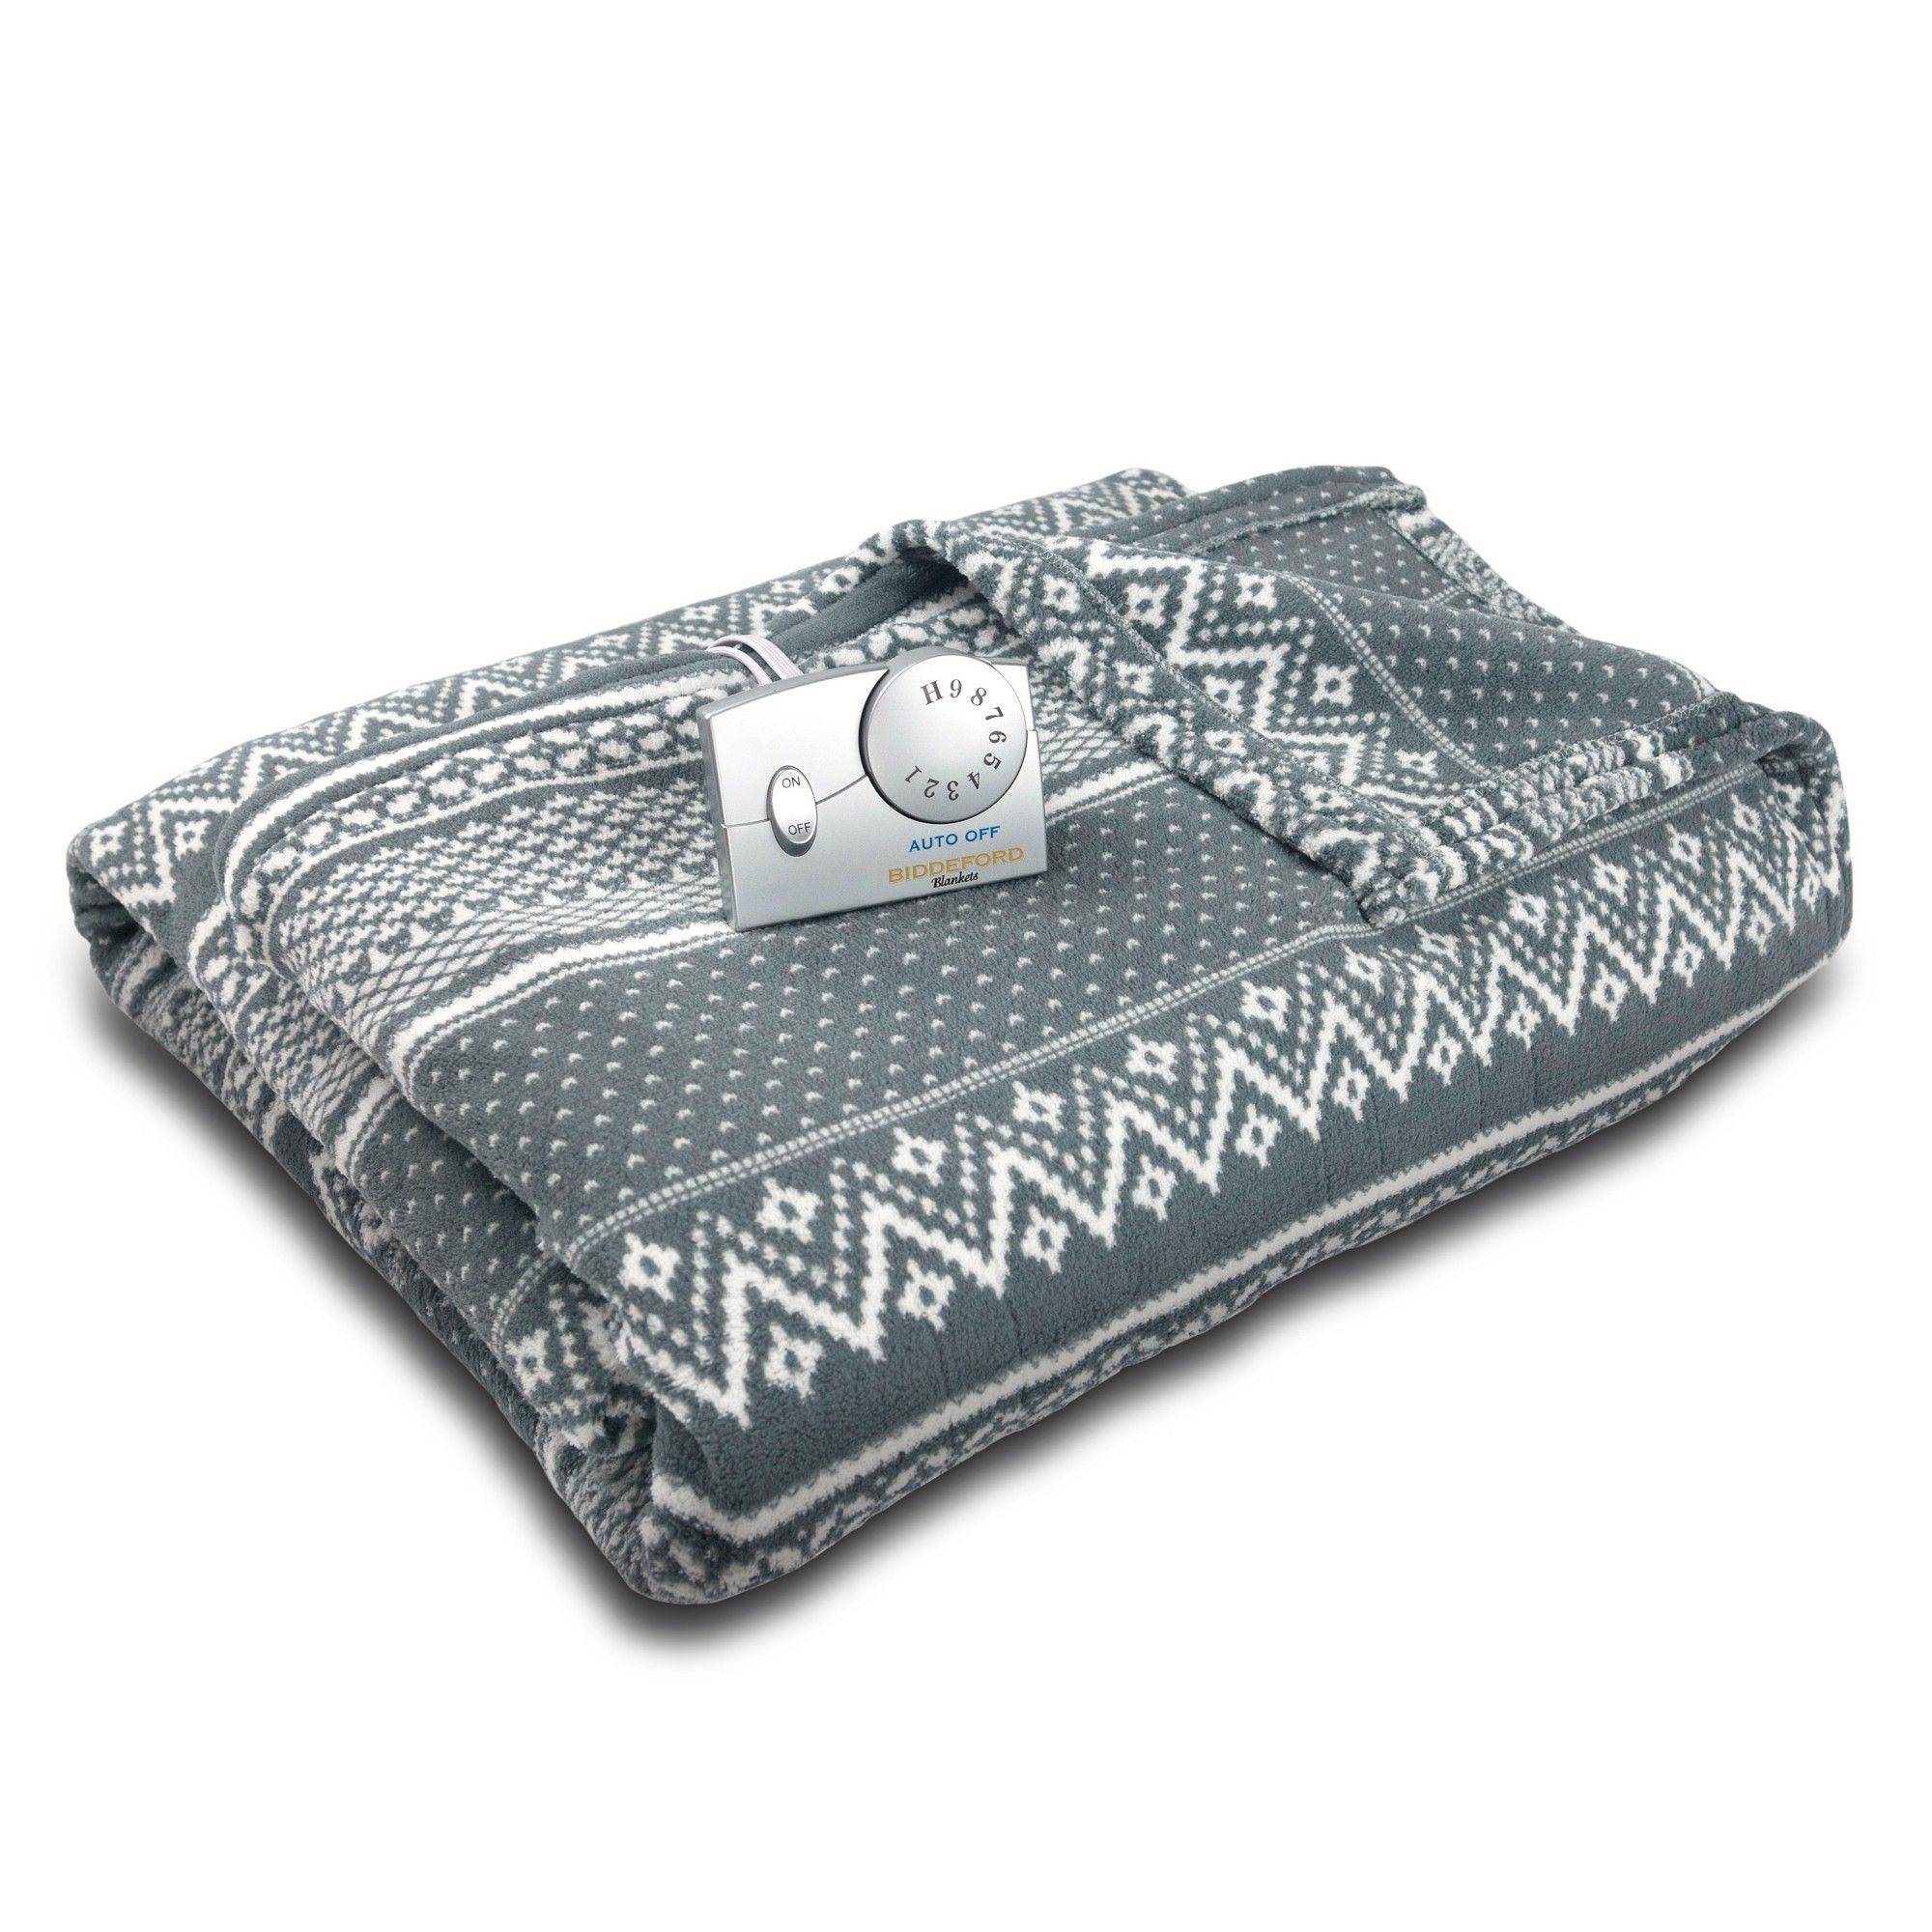 Many Styles Electric Fleece Blanket Heated Quilted Warm Winter Bed Zebra Black